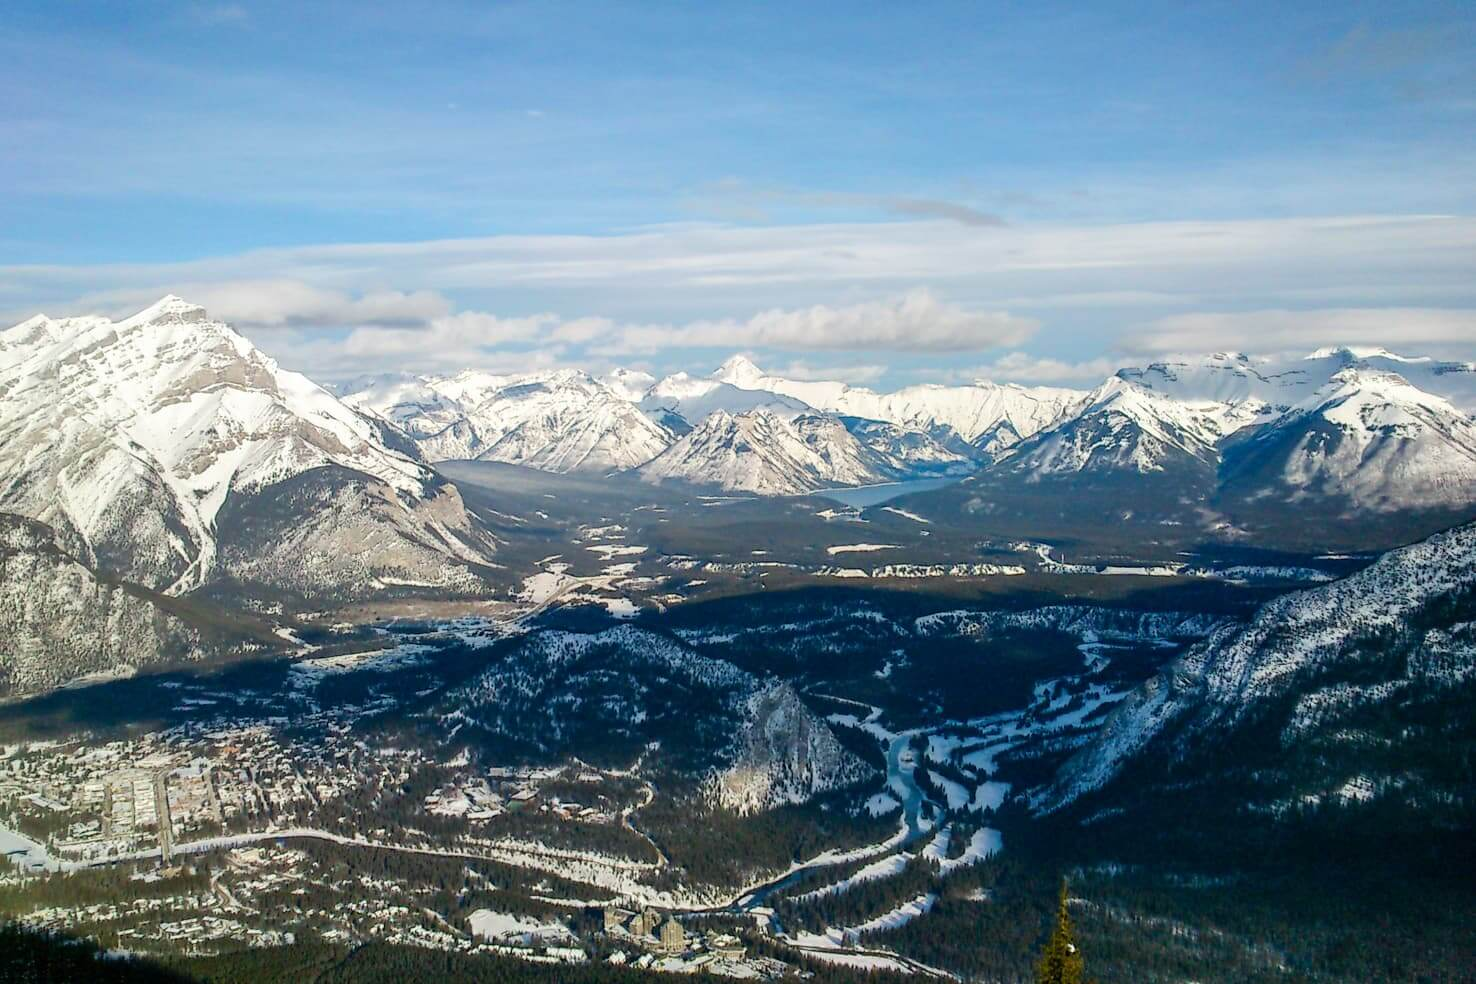 Banff hikes - 20 best hikes in Banff National Park, Canada